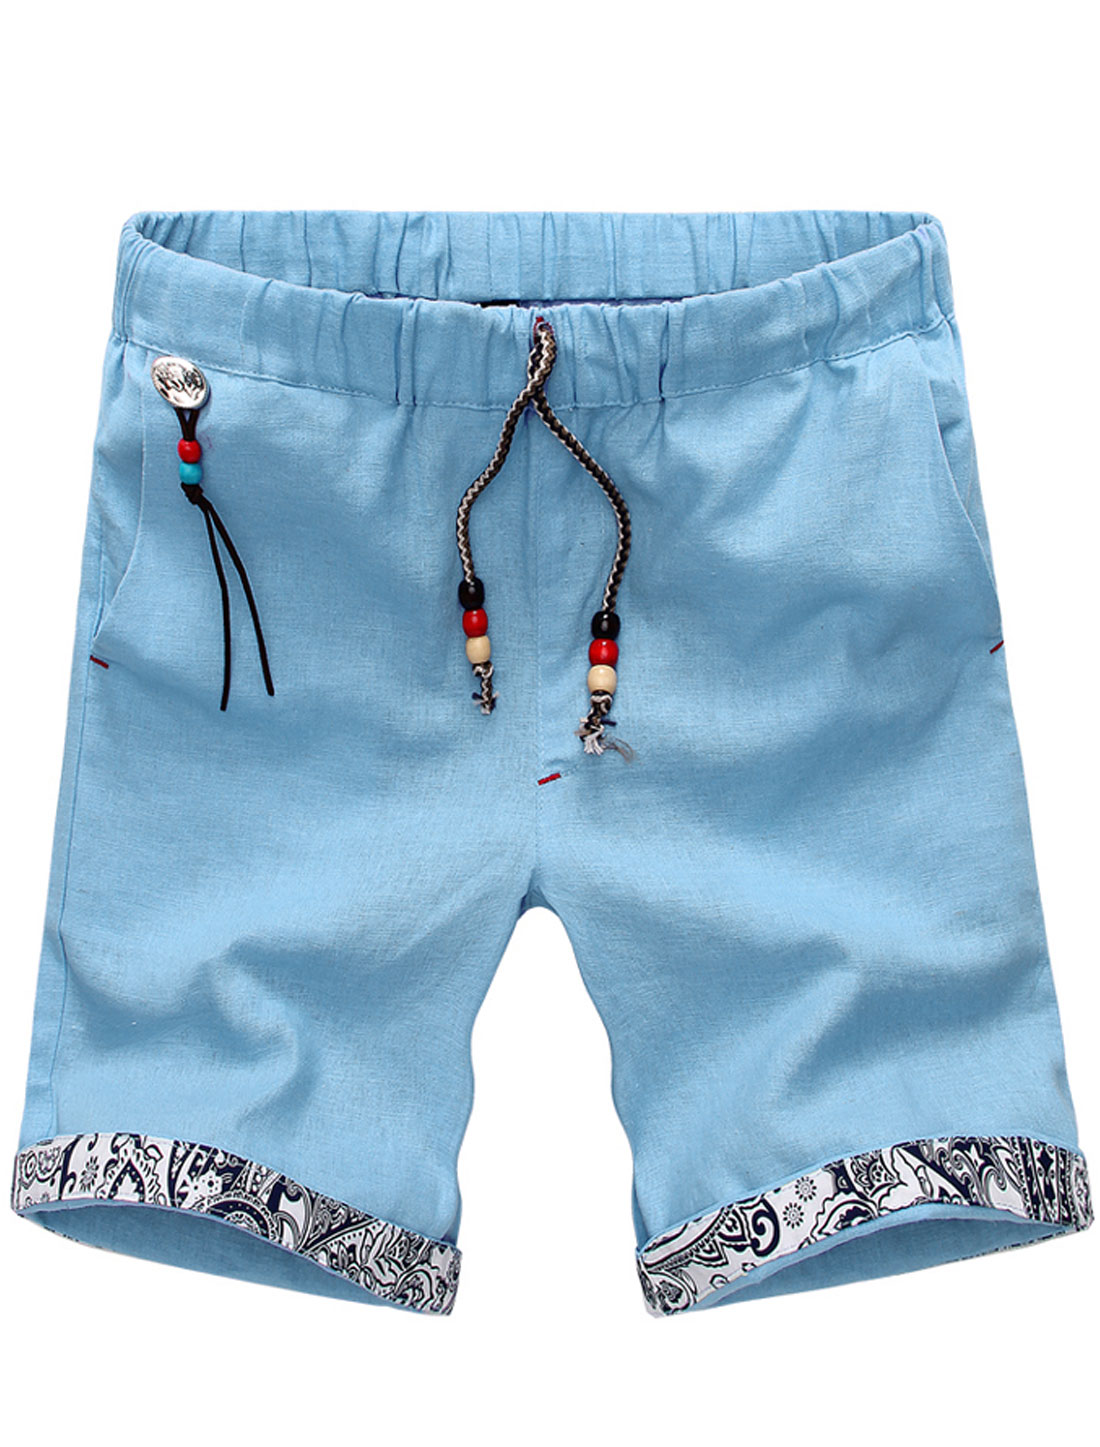 Men Drawstring Waist Wooden Pearls Decor Short Pants Sky Blue W32